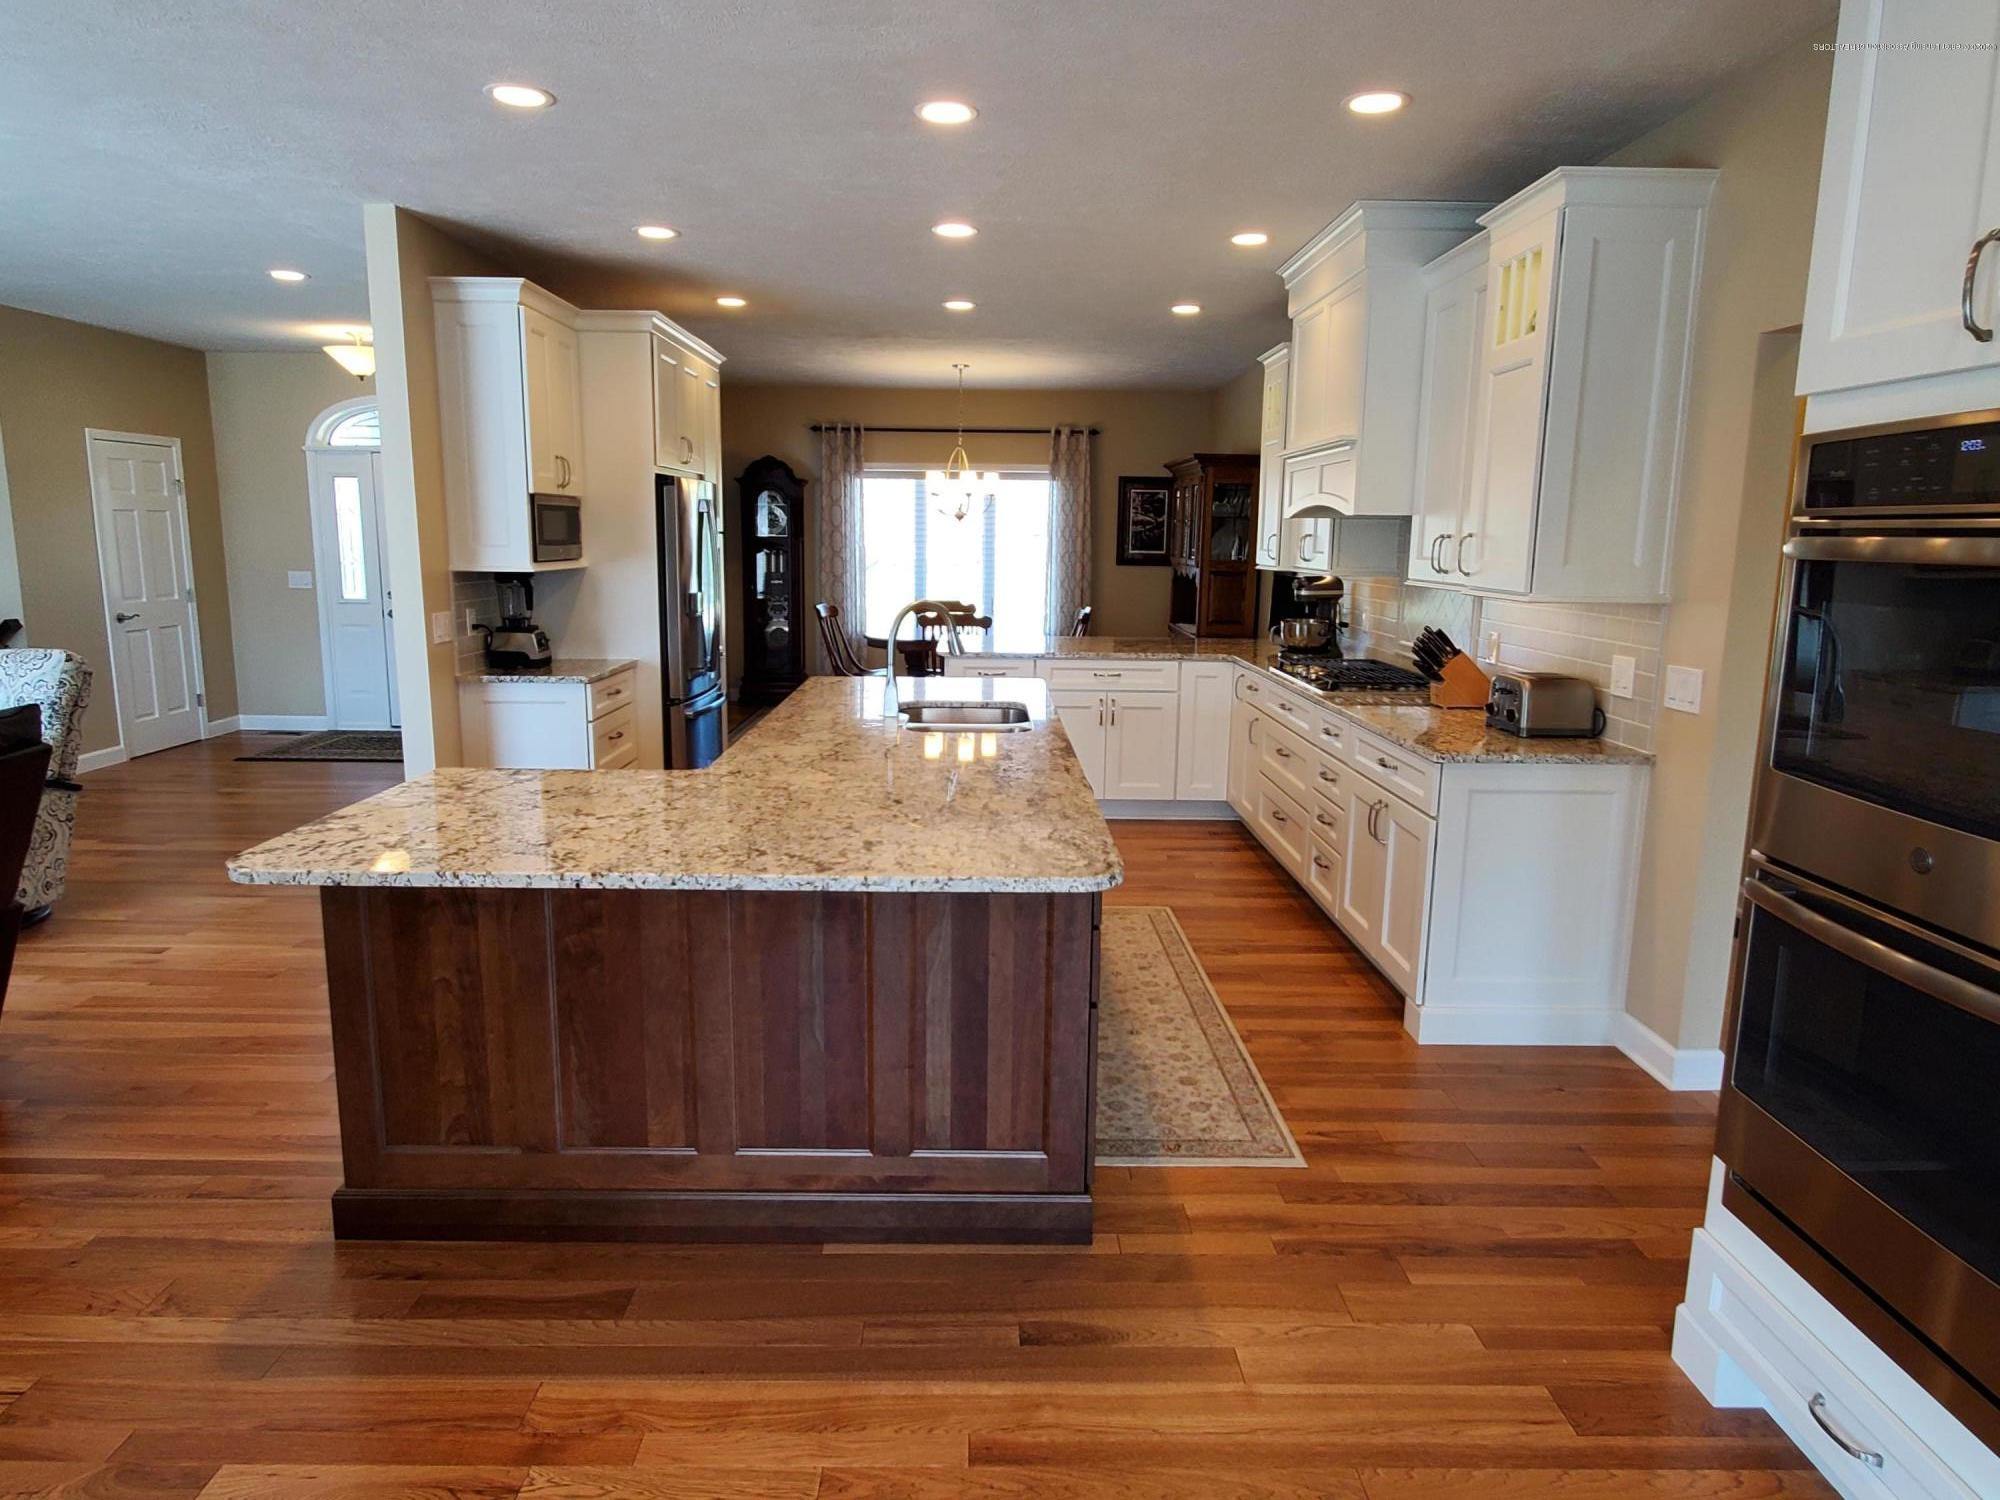 558 N Wheaton Rd - Gourmet Kitchen - 13